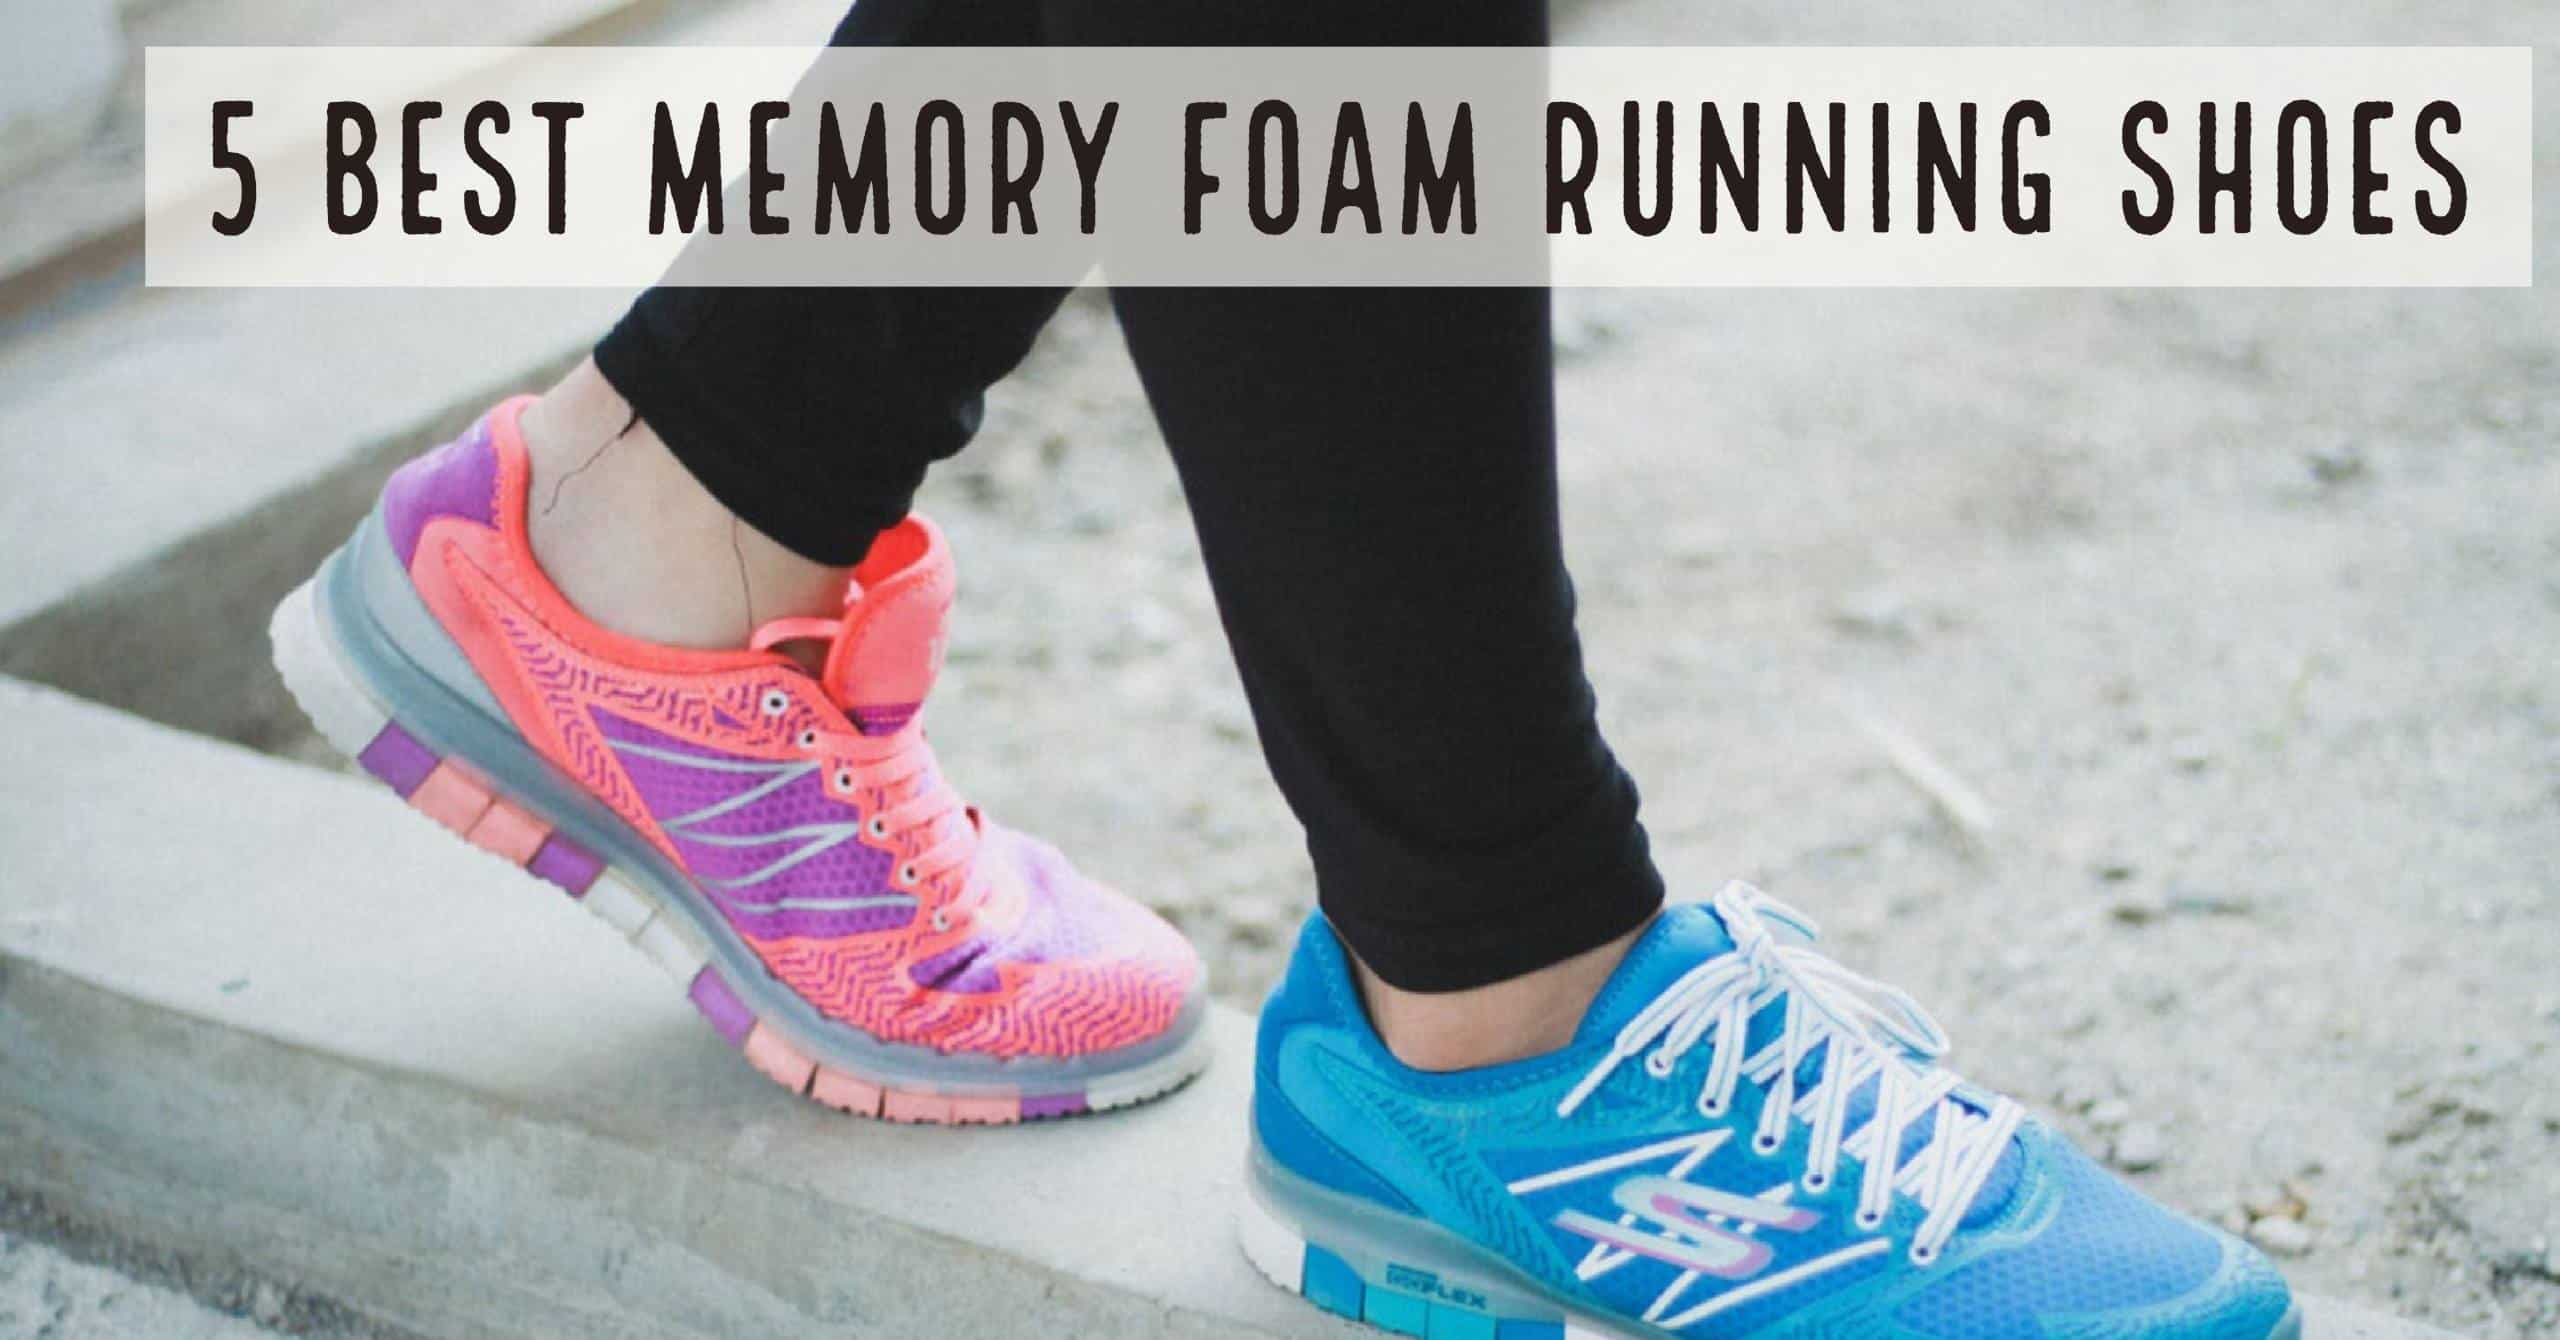 Memory foam running shoes are becoming more popular over time. Also, every major running shoe brand has its own memory foam technology and designs to make their shoes more competitive in the market. Here are the 5 best memory foam running shoes.